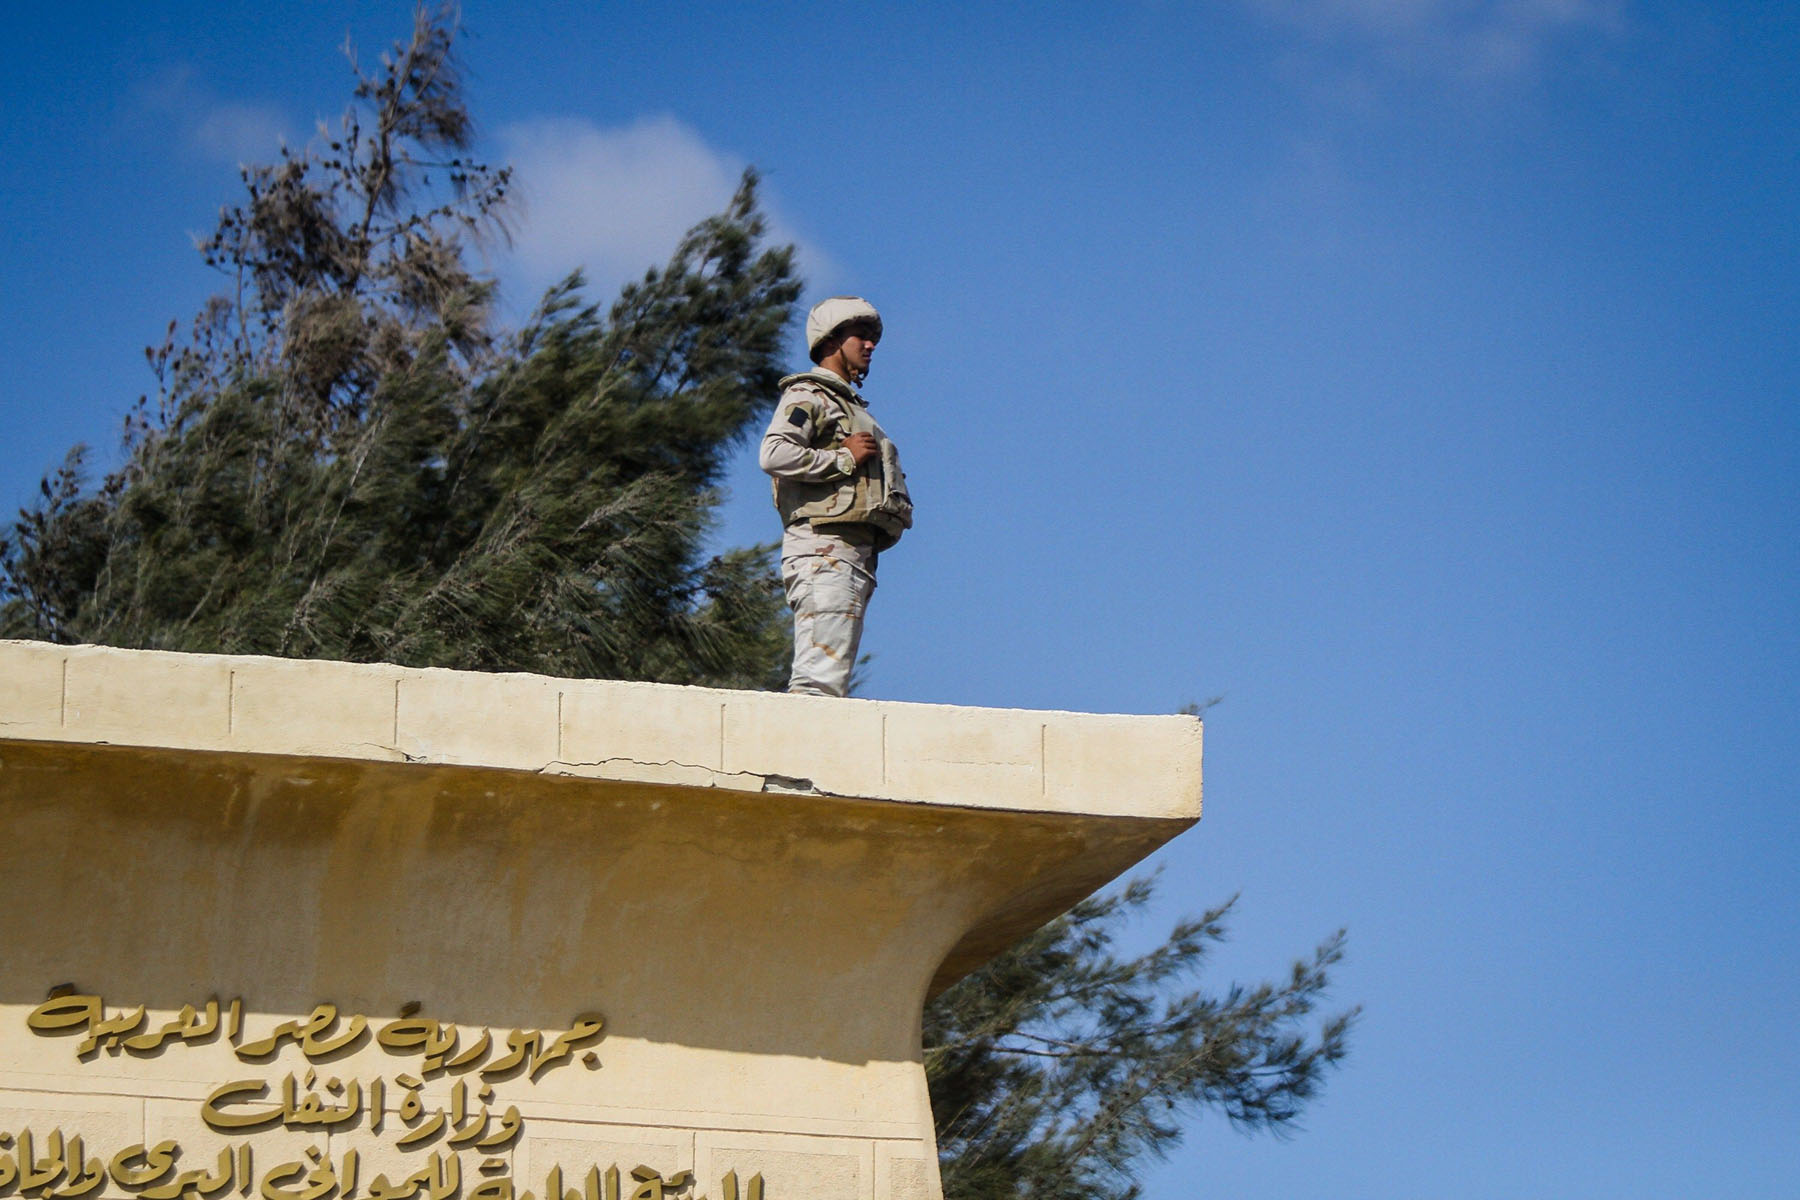 An Egyptian soldier stands guard on the Egyptian side at the Rafah border crossing in the southern Gaza Strip. (AFP)